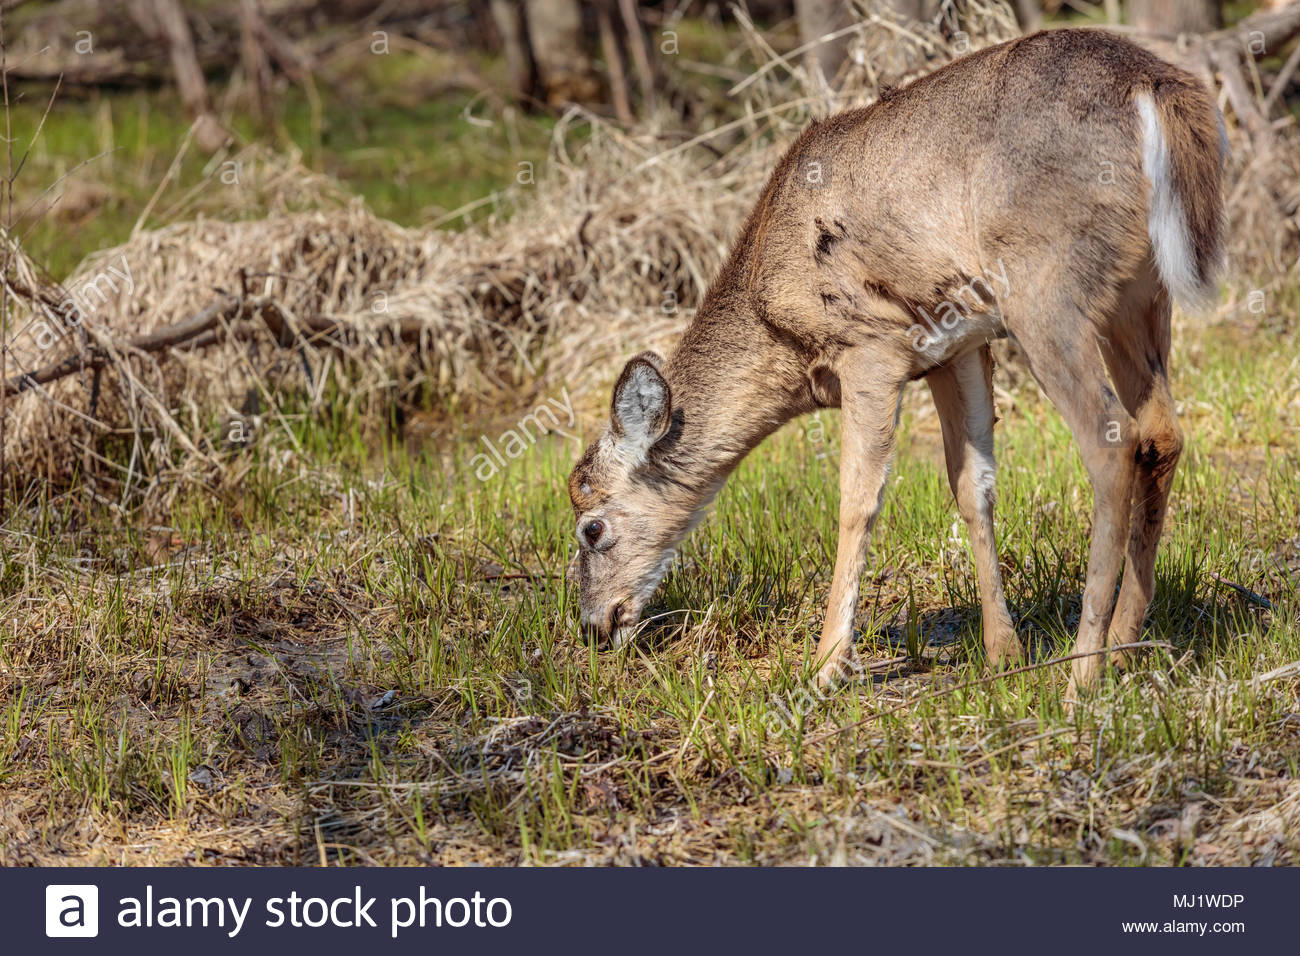 White-tailed deer Odocoileus virginianus grazing on spring grass at Lynde Shores Conservation Area in Whitby Ontario Canada - Stock Image